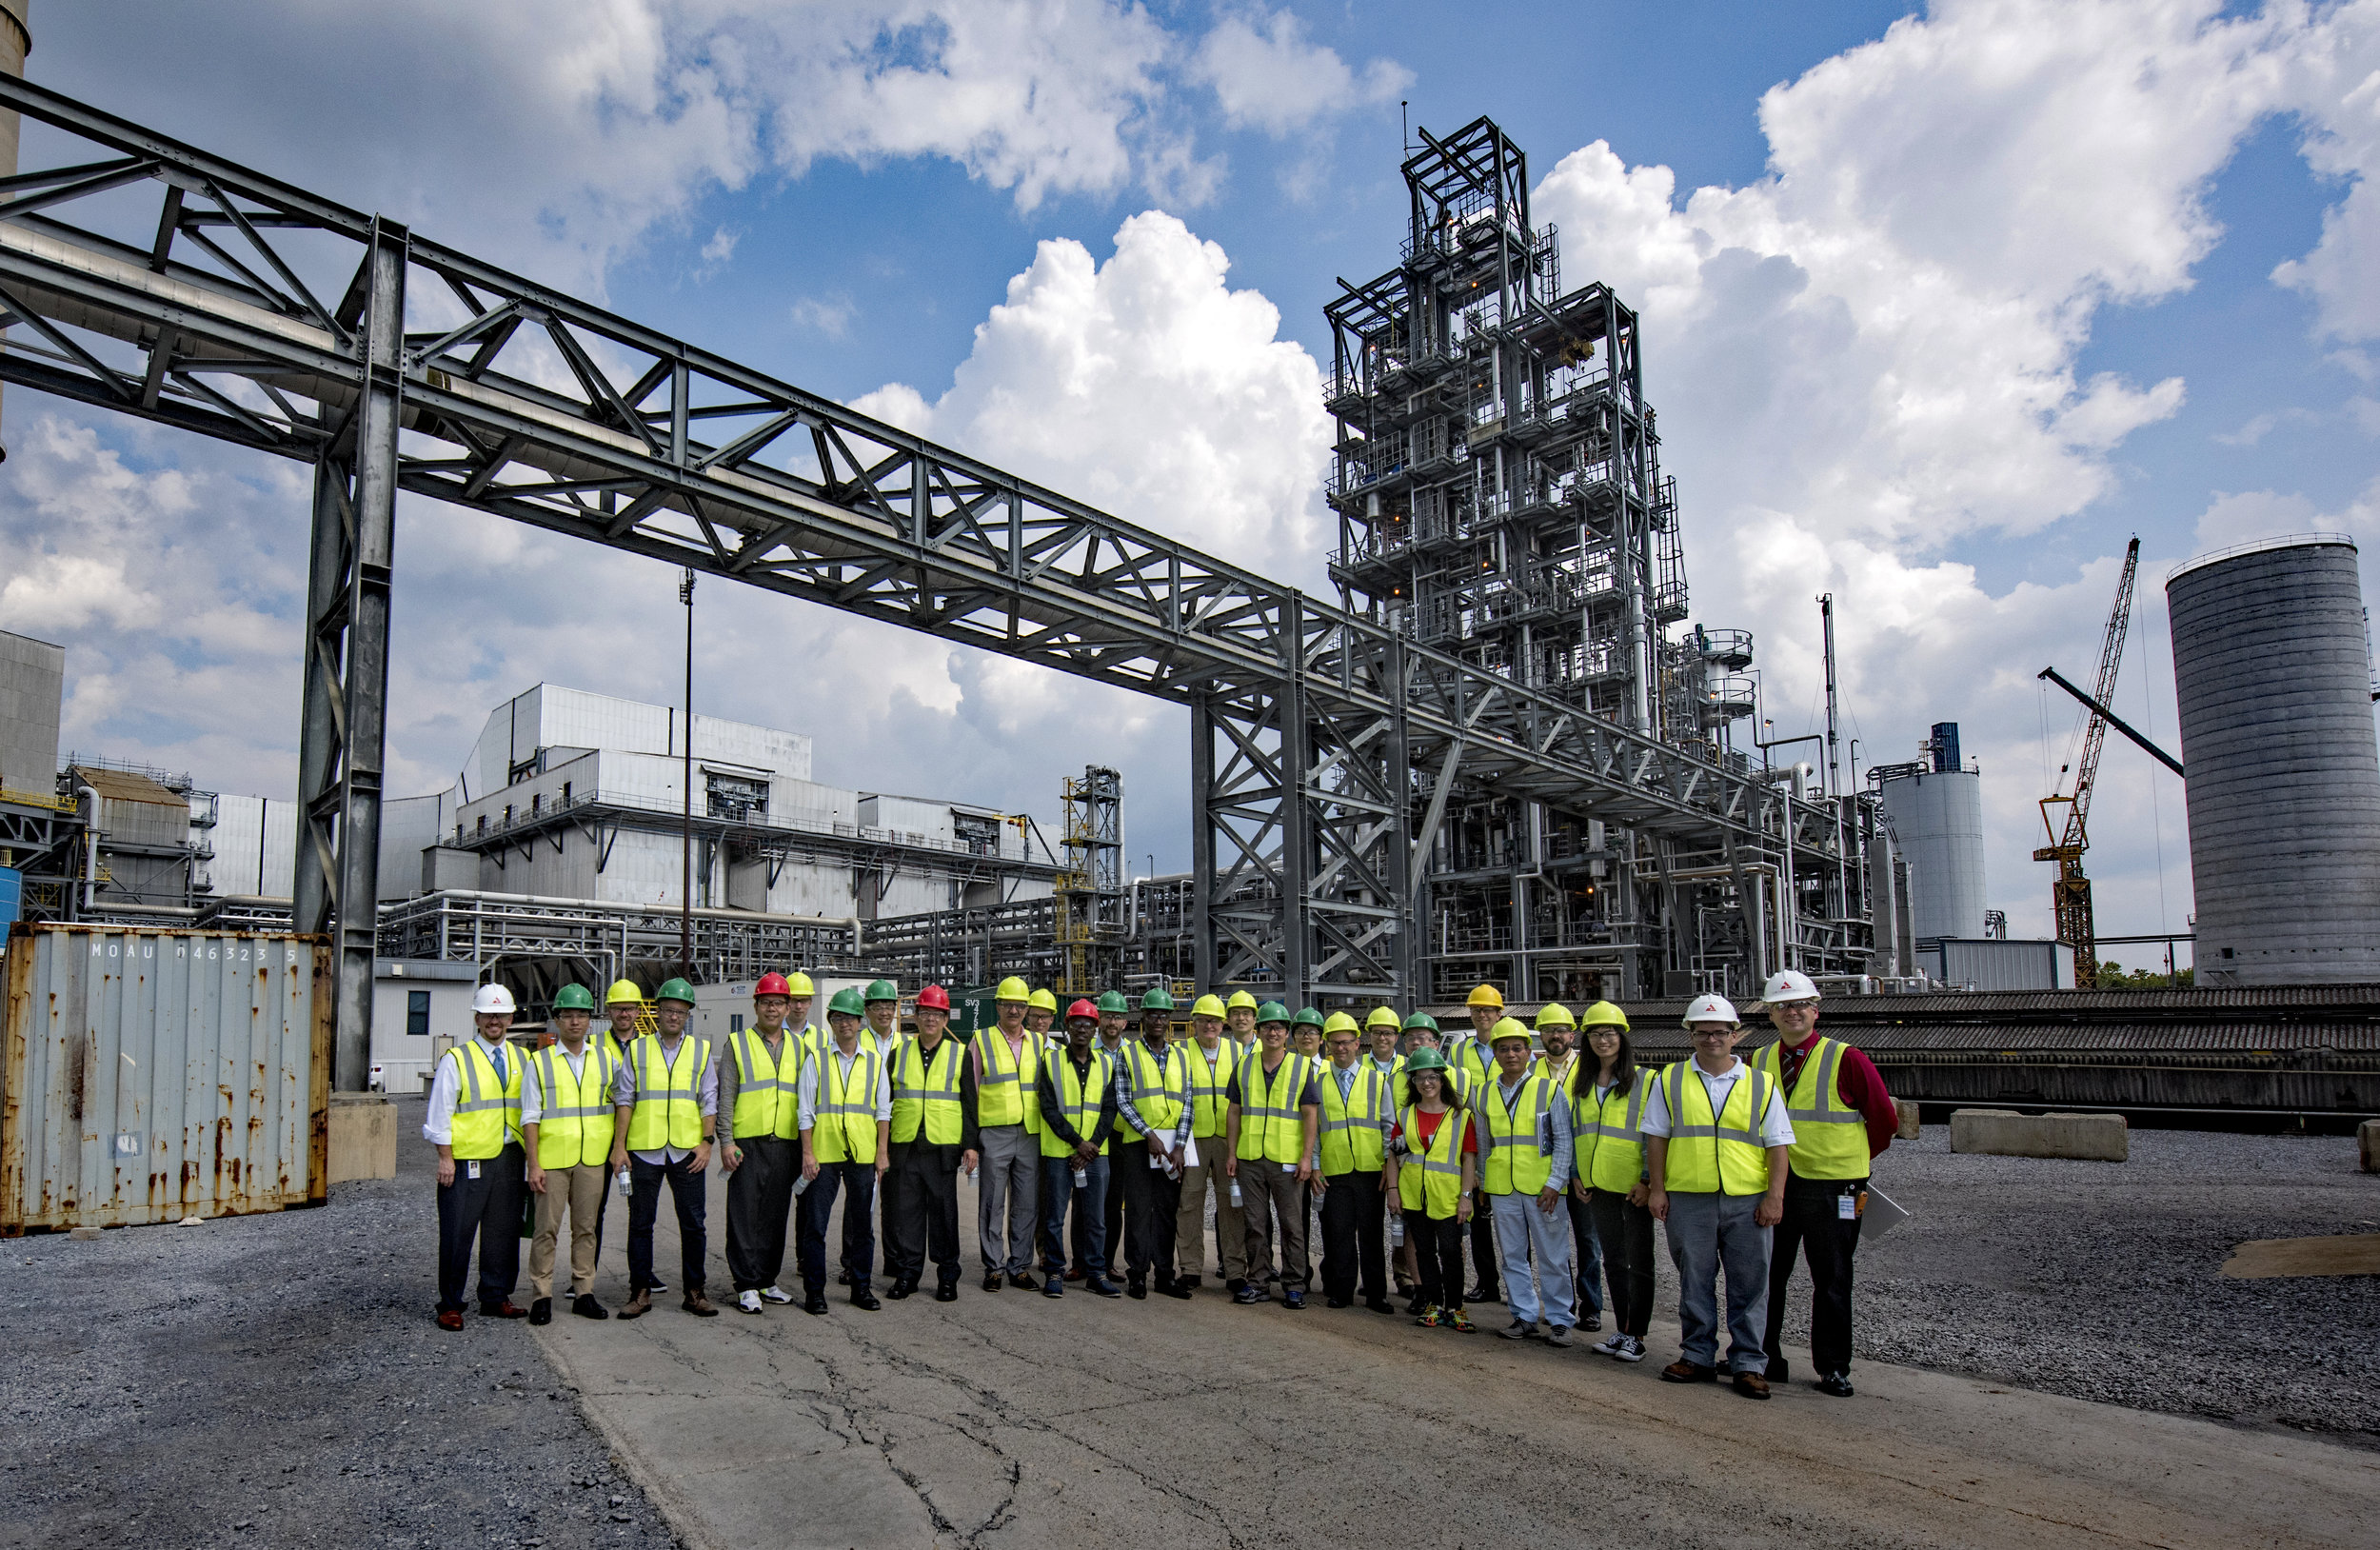 A group of global CCS experts visit the National Carbon Capture Center's post-combustion carbon capture facility, located at Alabama Power's Plant Gaston.